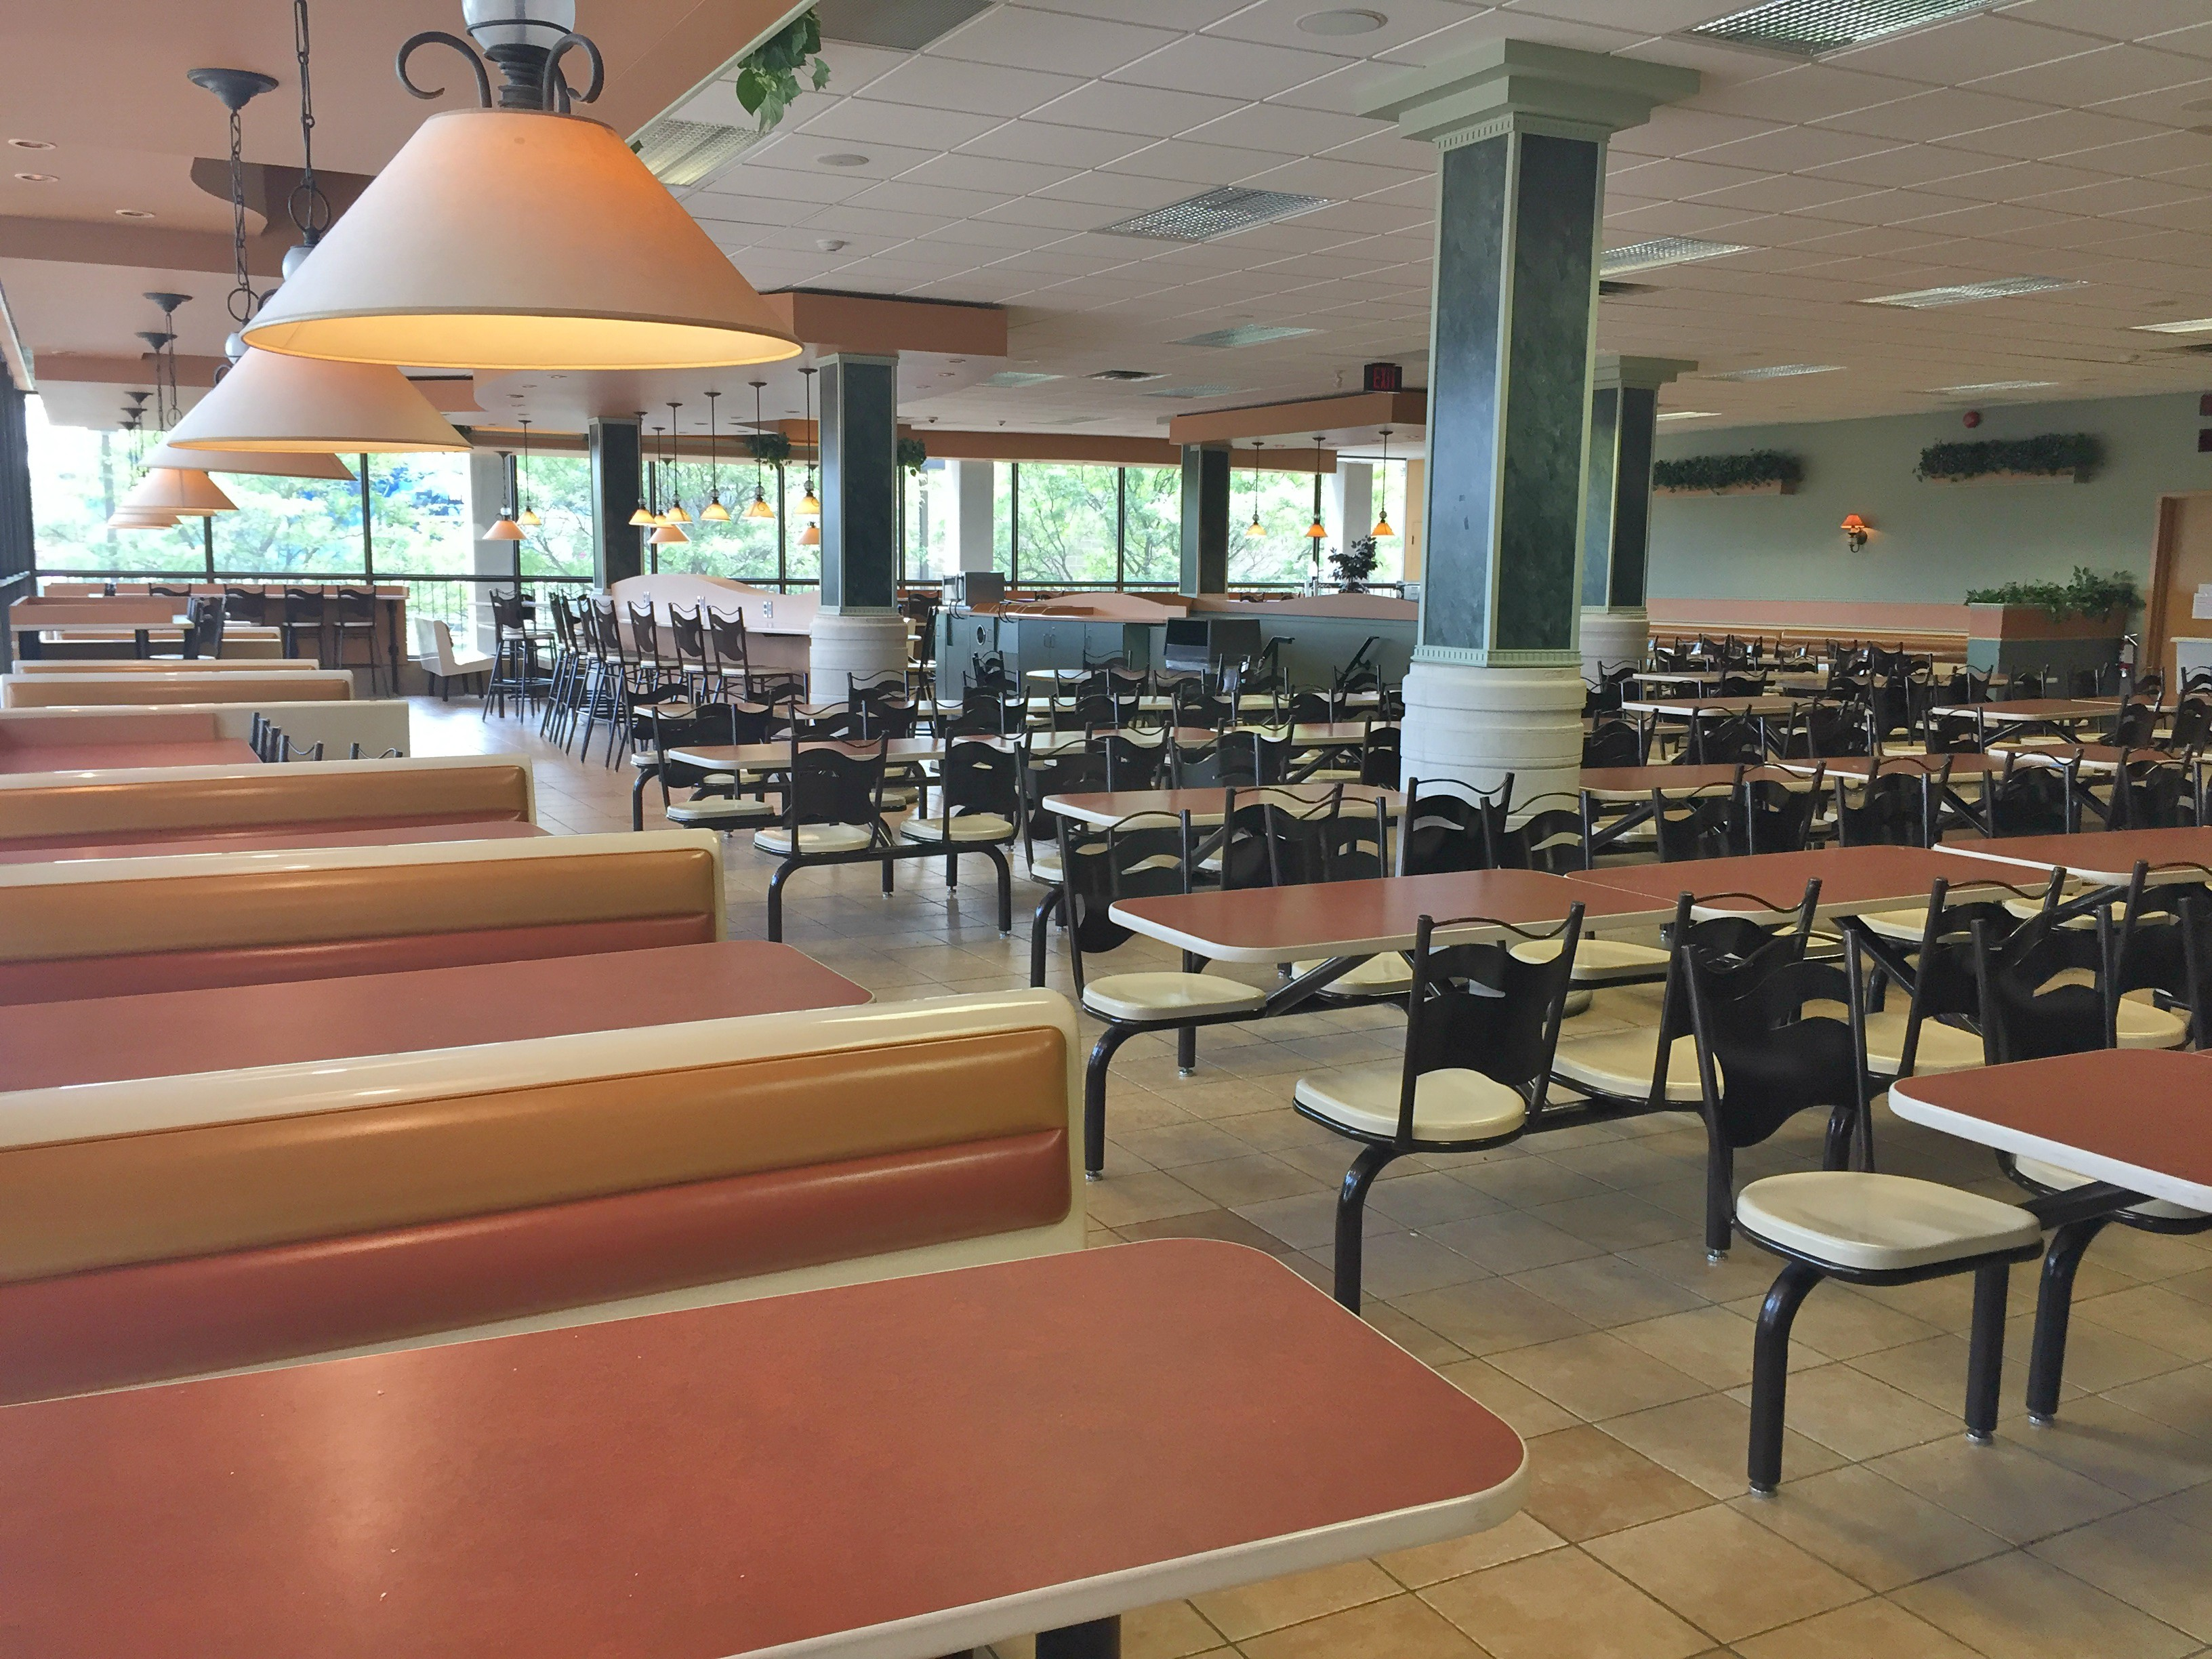 Marketplace cafeteria with fixed seating and booths